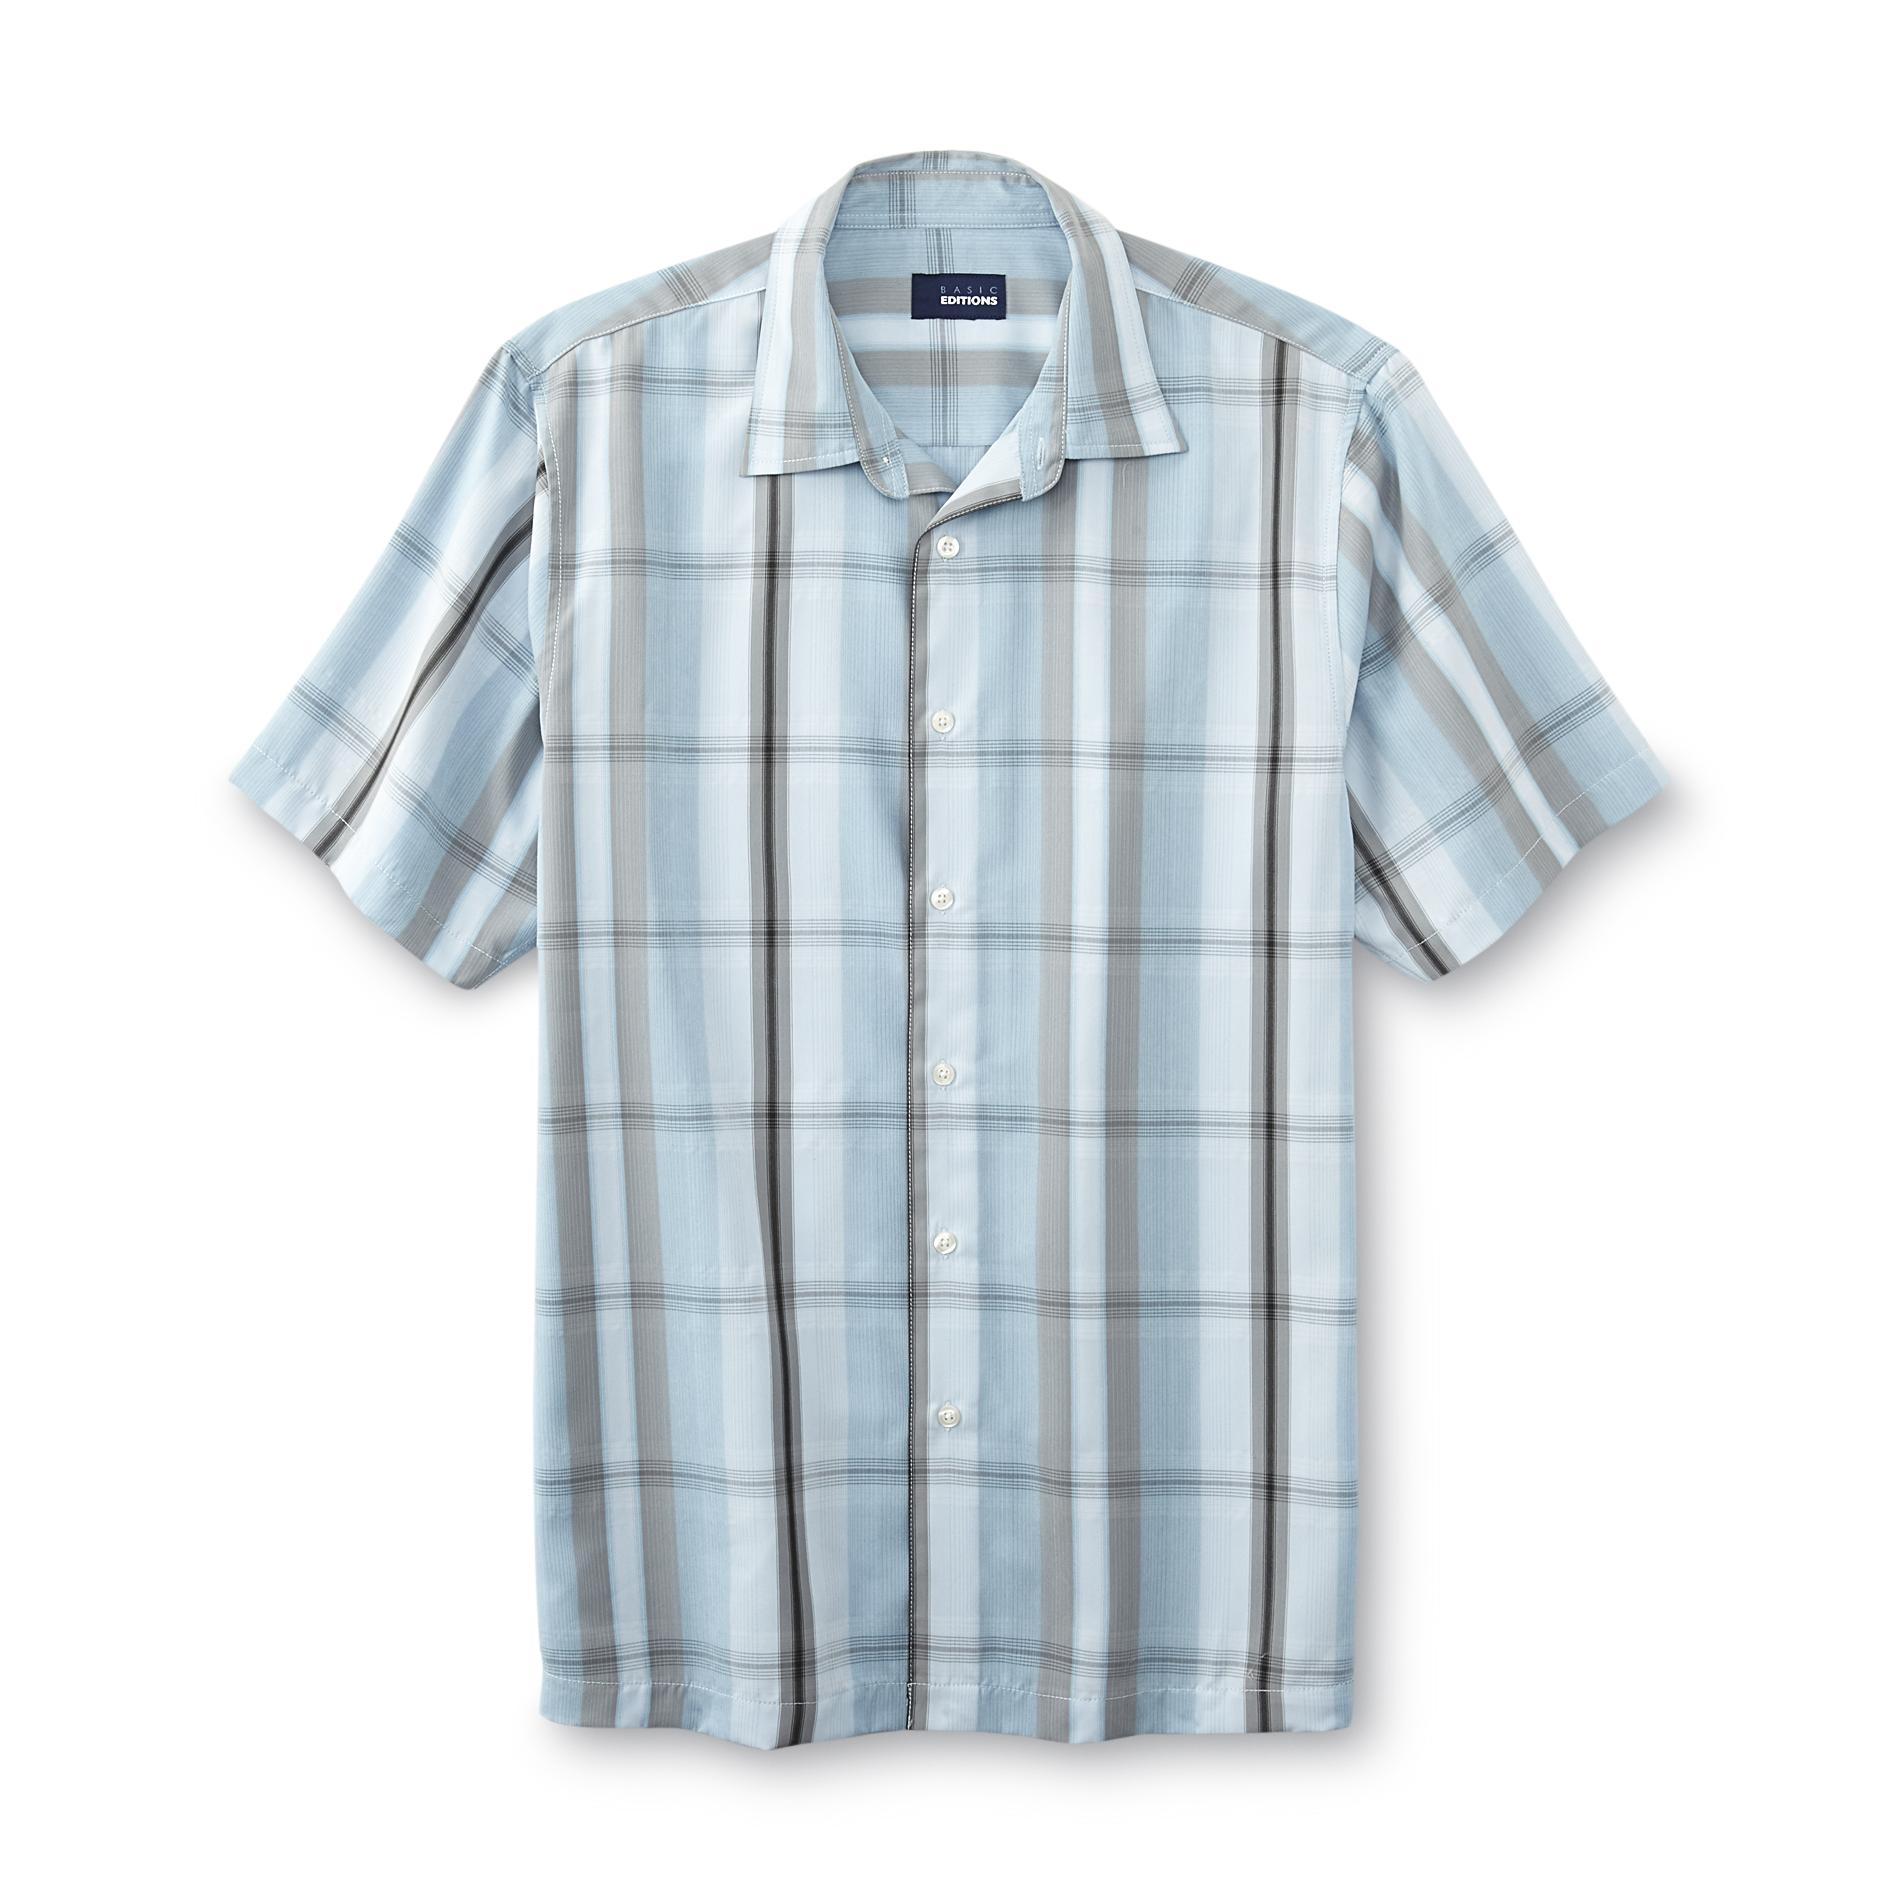 Basic Editions Men's BIg & Tall Button-Front Dress Shirt - Grid